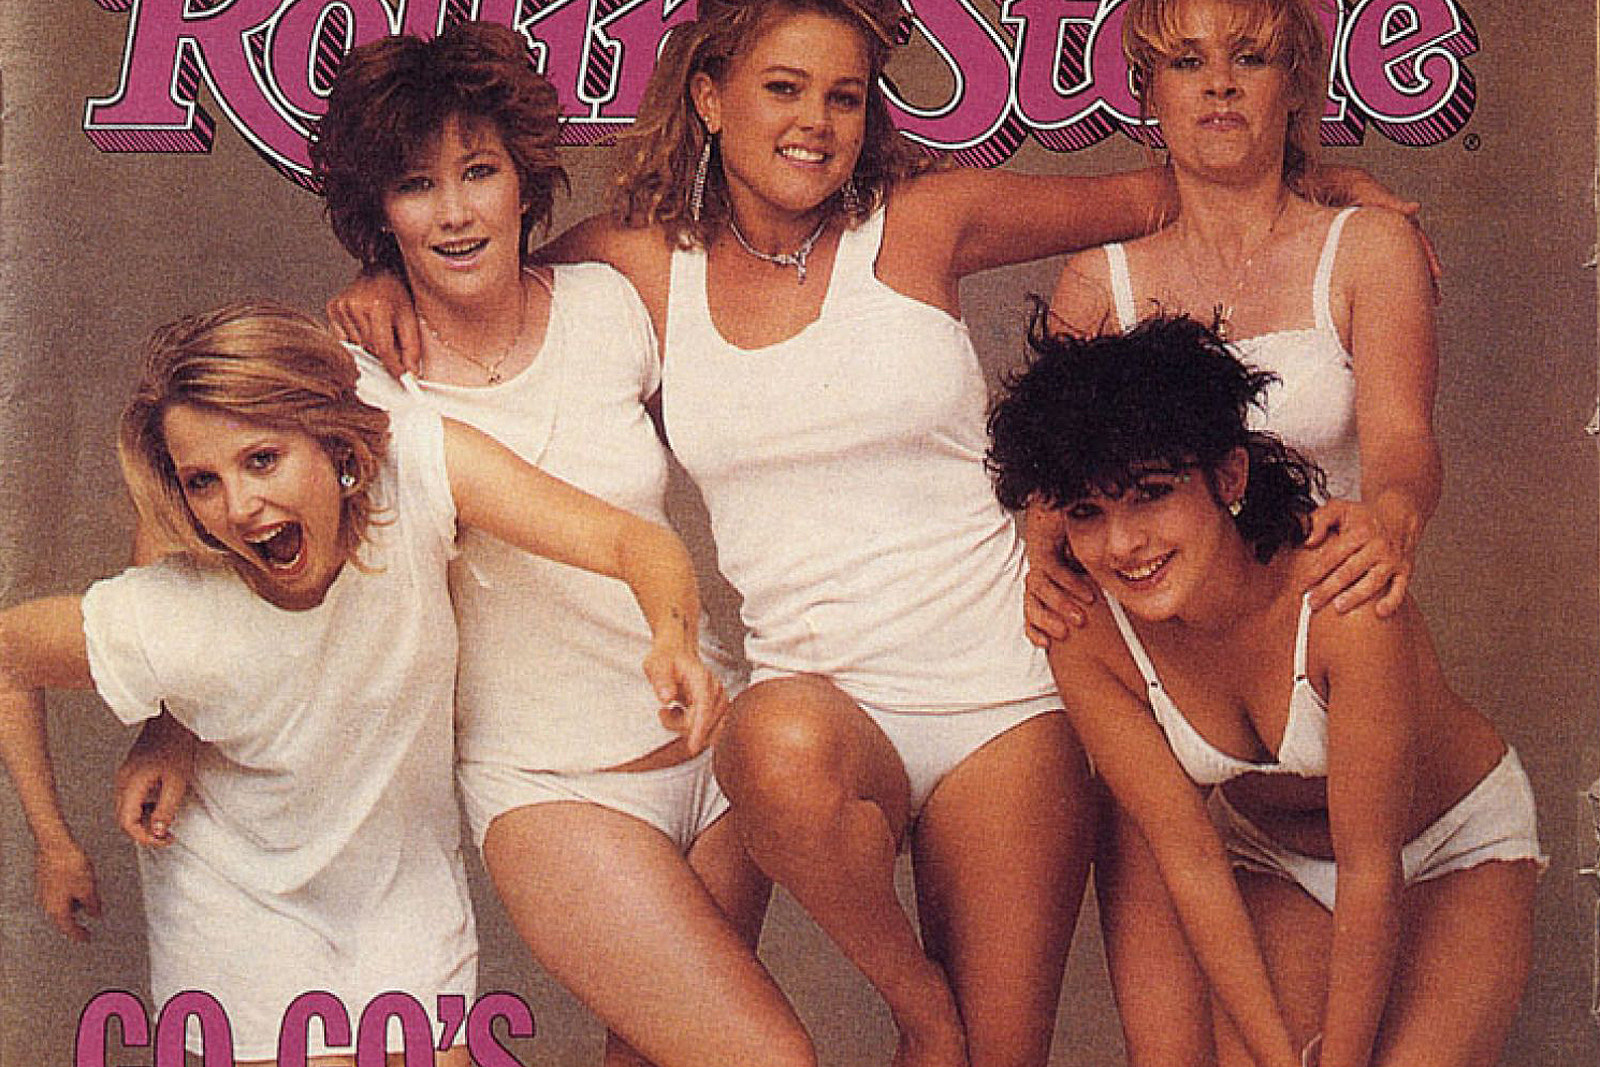 Go-Go's' Kathy Valentine Looks Back on Rock 'N' Roll 'Vacation'